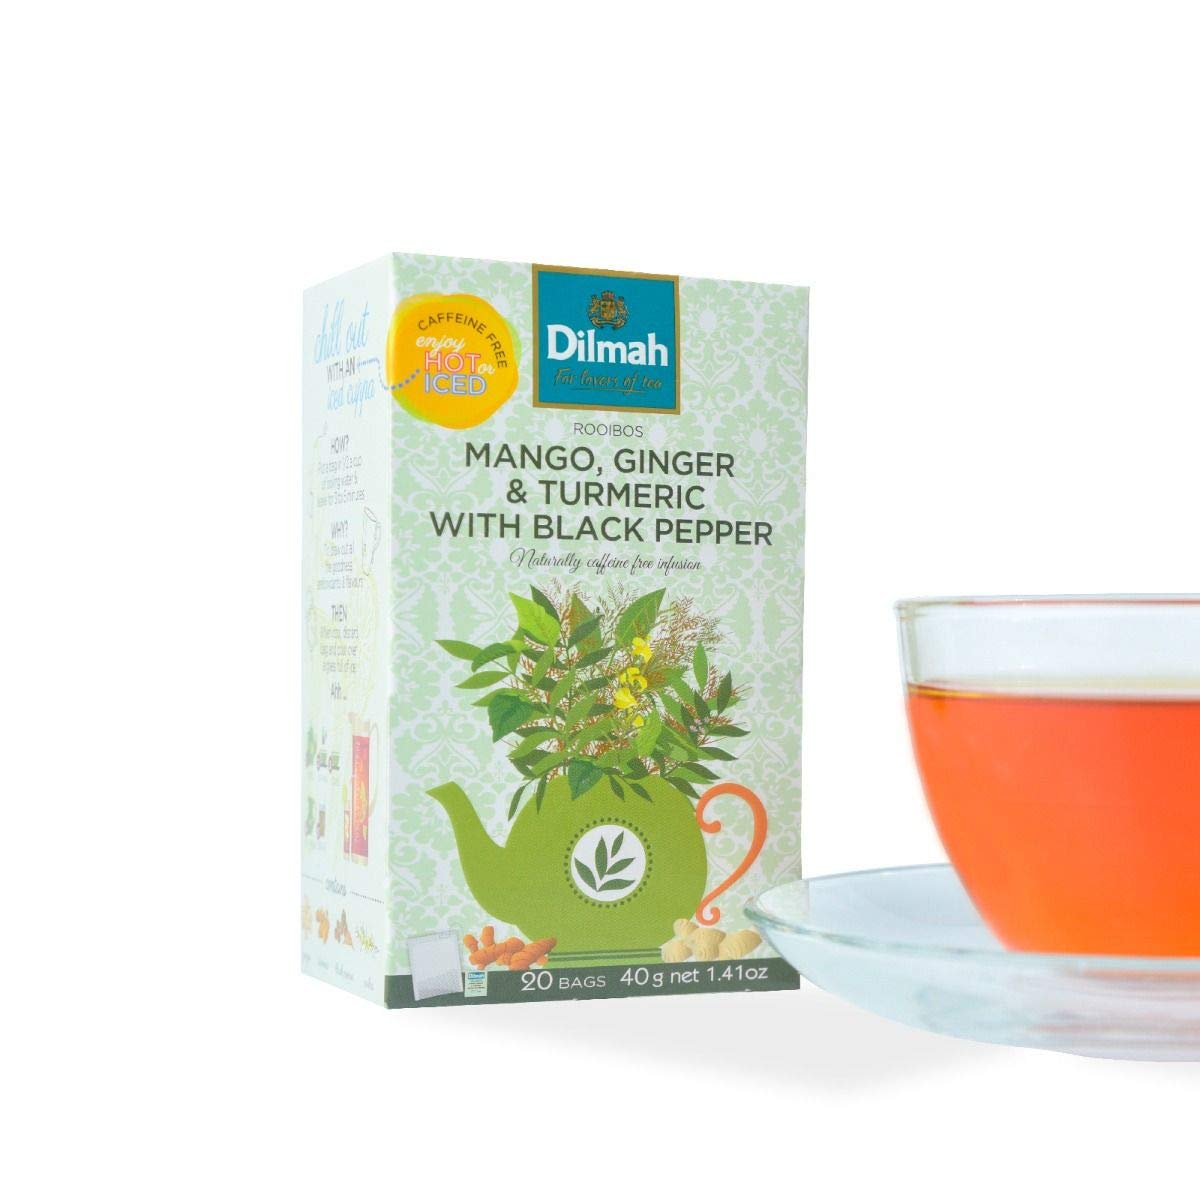 Dilmah Red Rooibos with Mango,Ginger,Turmeric with Black Pepper Tea - 20 Tea Bags X 8 Pack - Naturally Caffeine Free by Dilmah